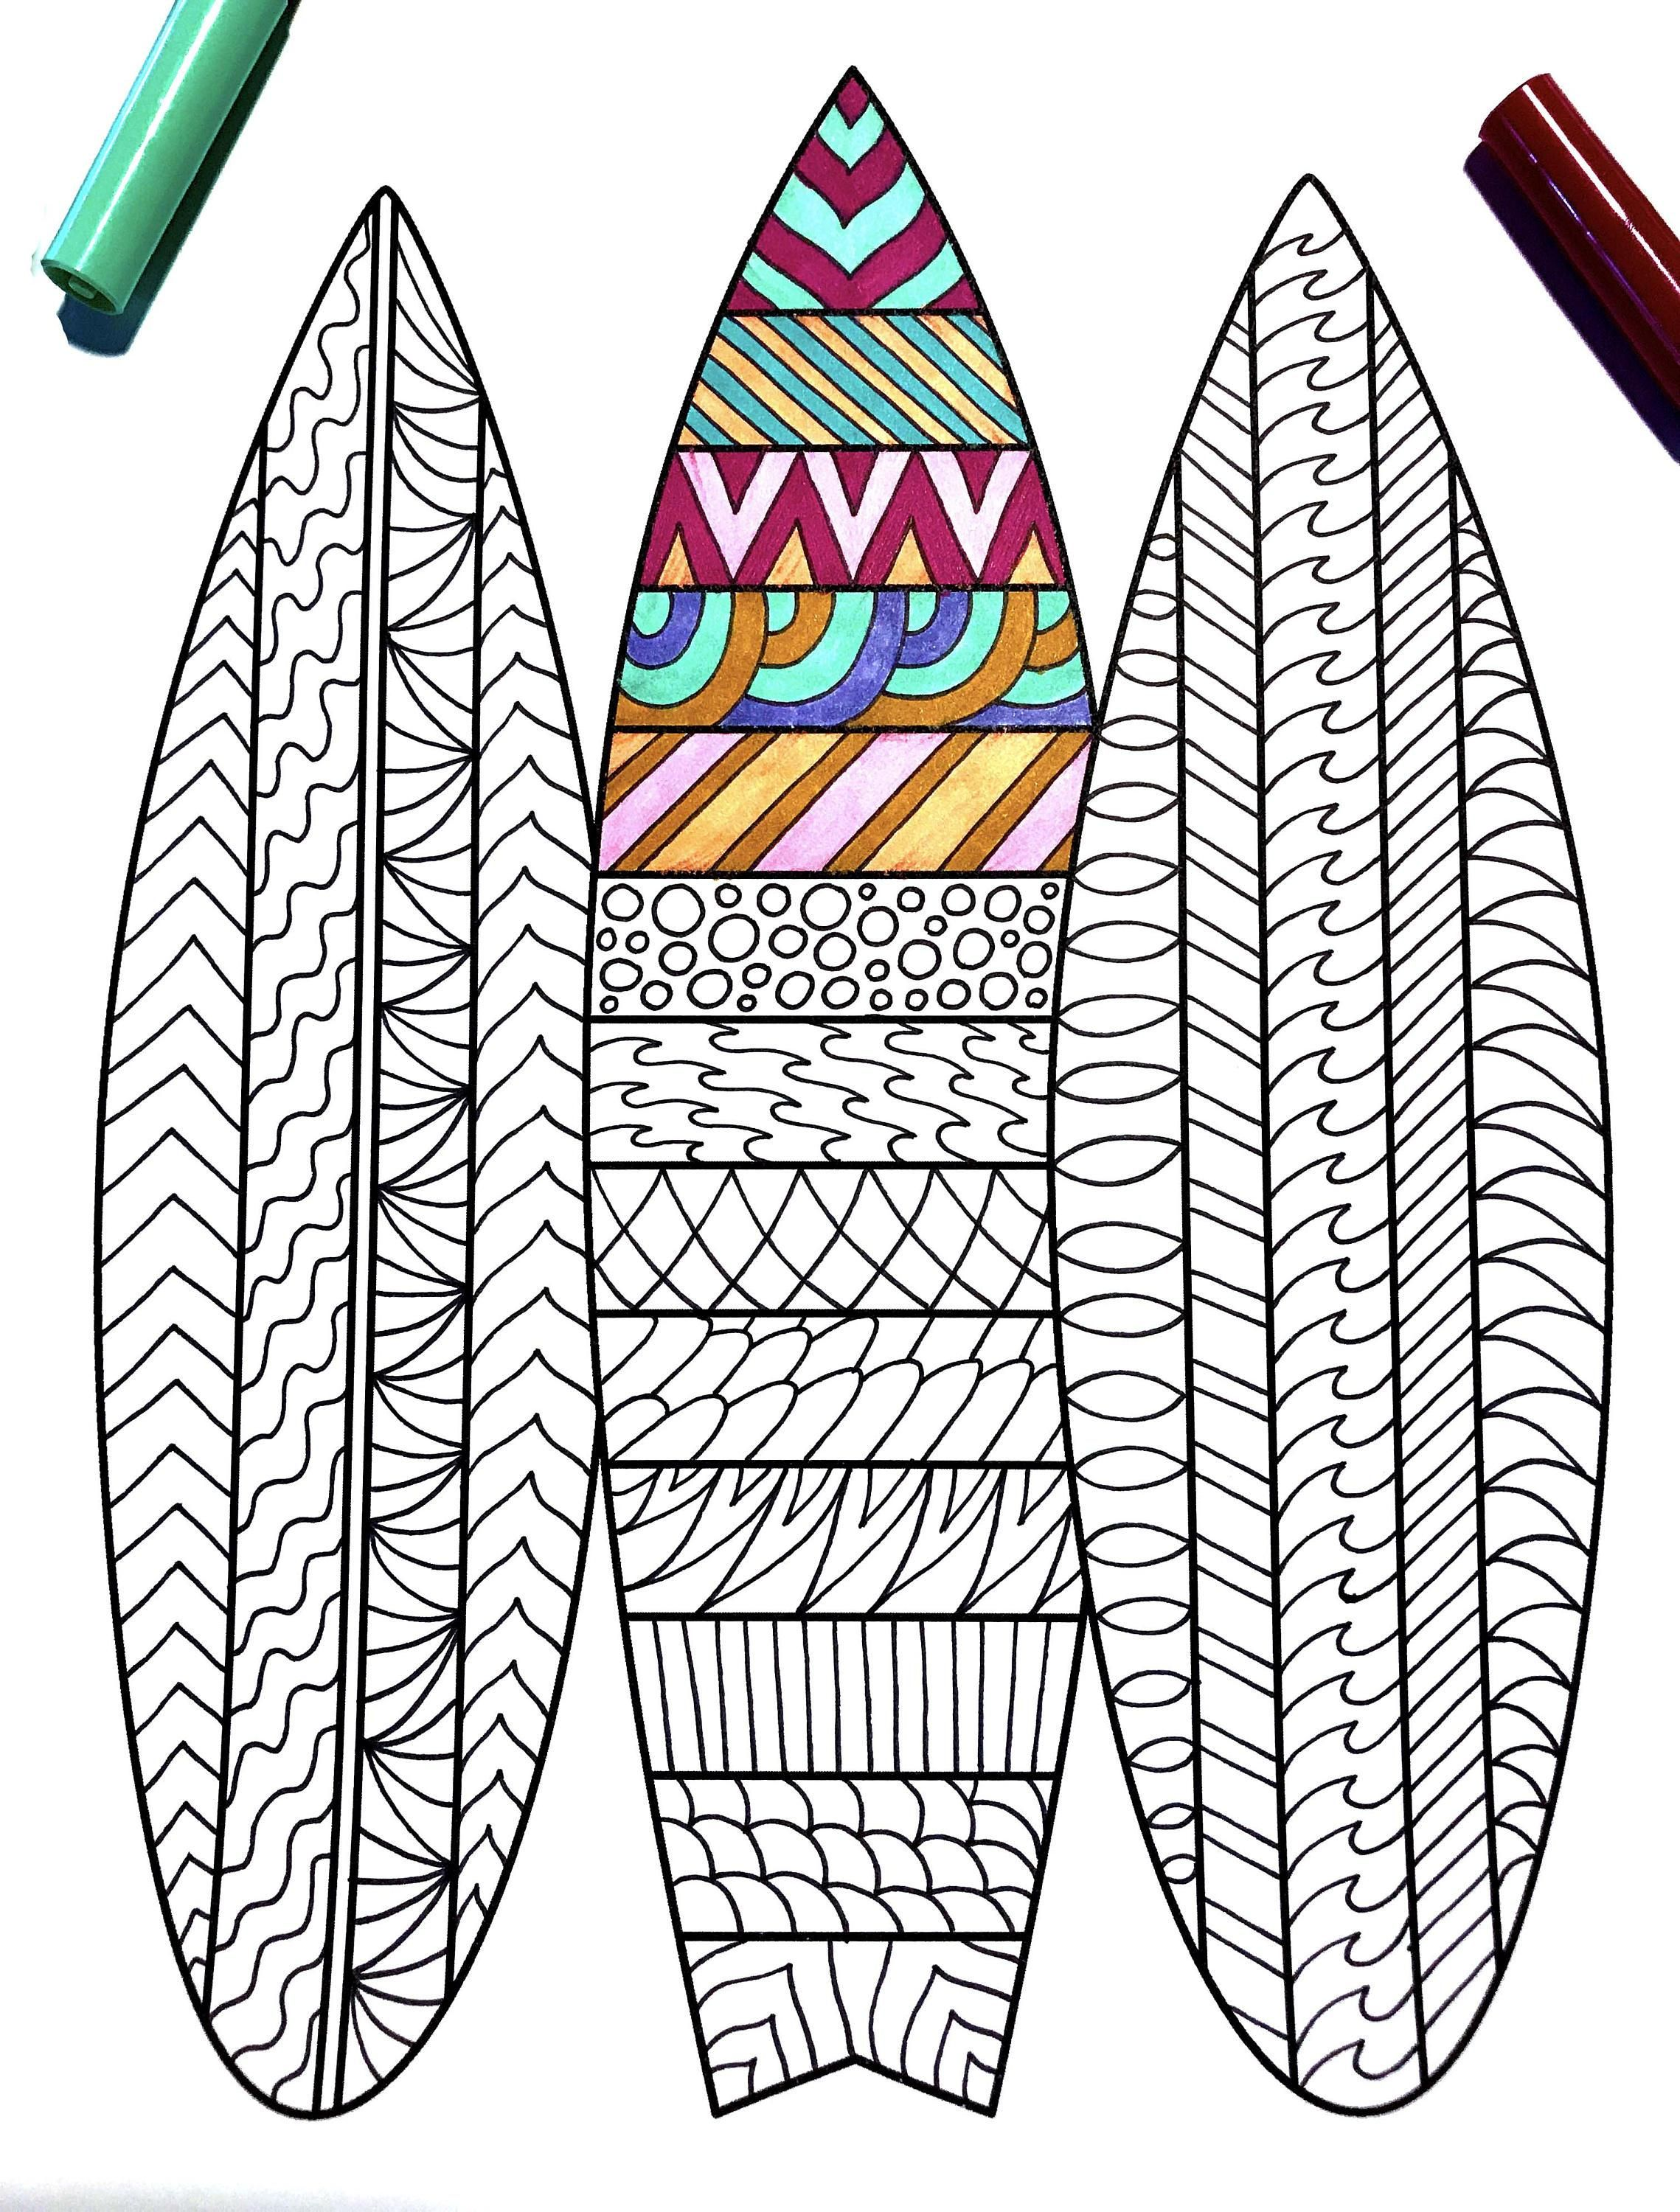 Surfboards Pdf Zentangle Coloring Page Scribble Stitch Coloring Pages Surfboard Art Design Surfboard